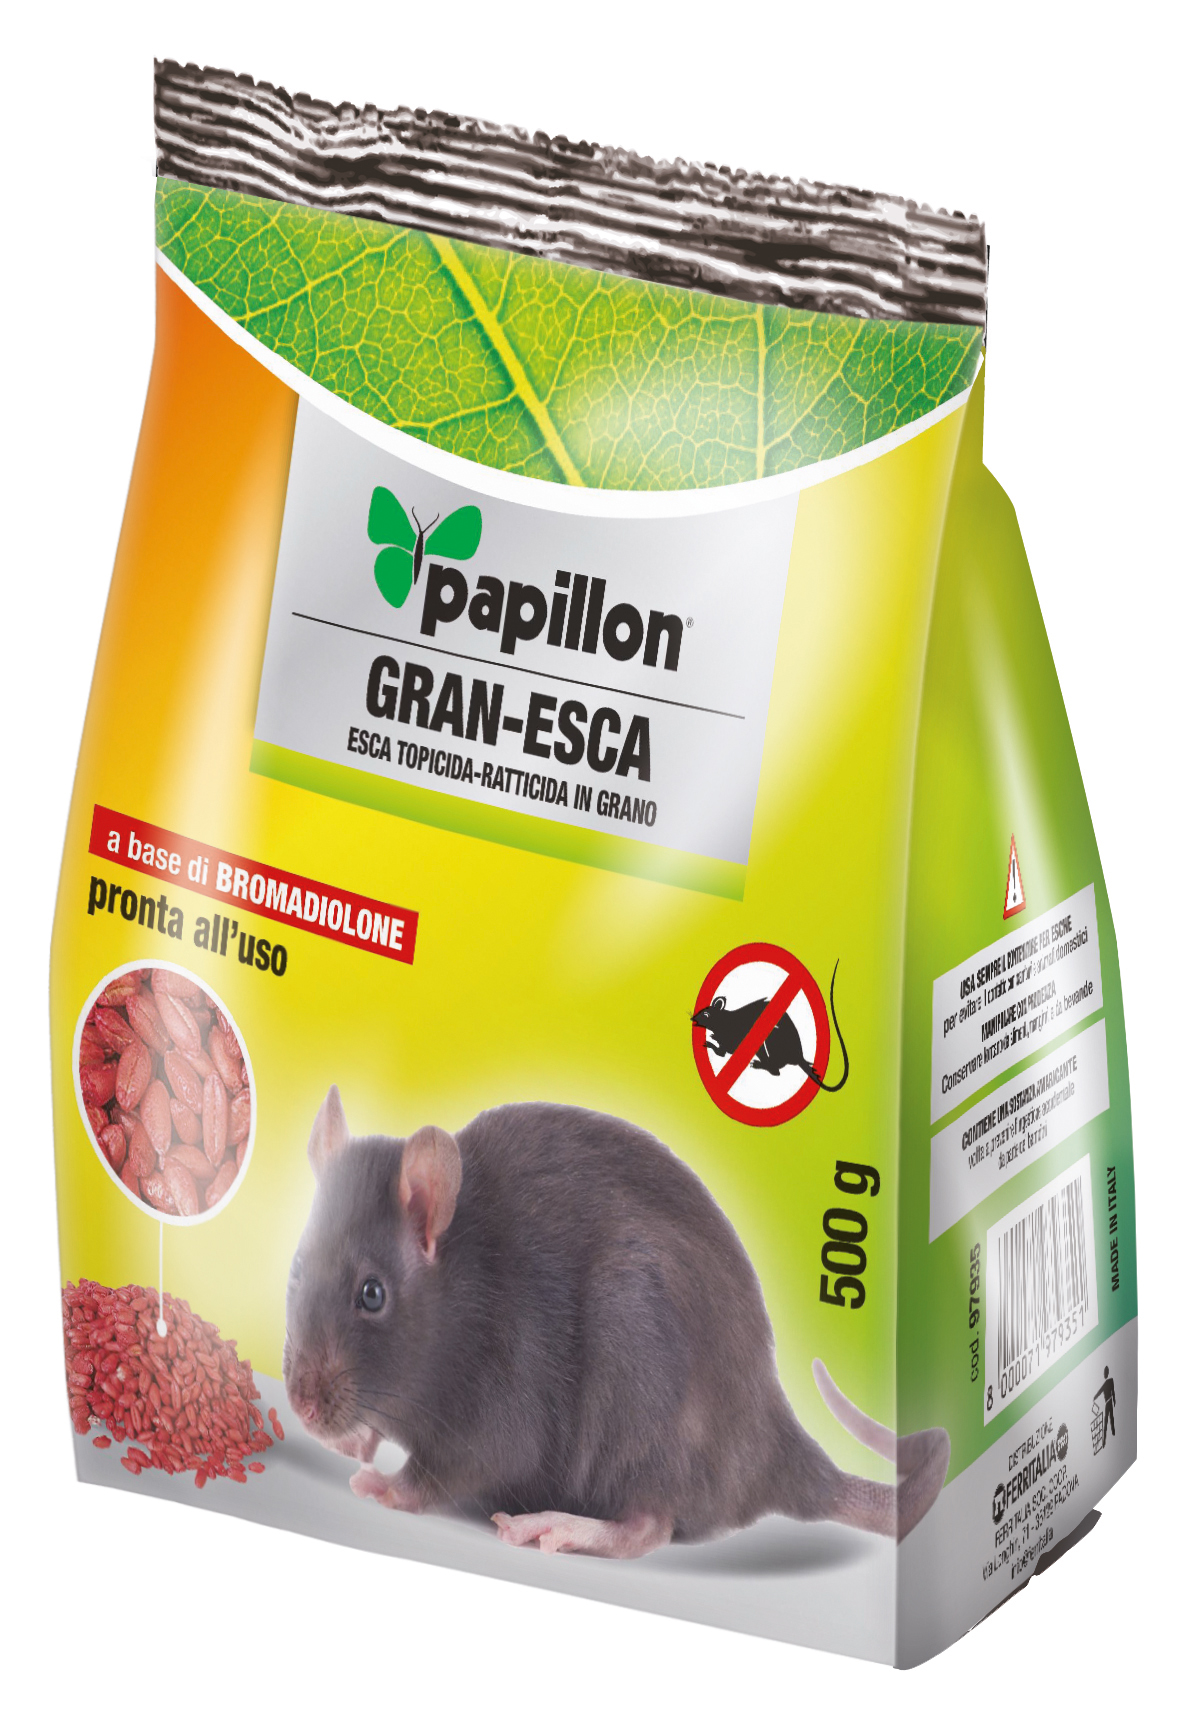 ESCA RODENTICIDA IN GRANO